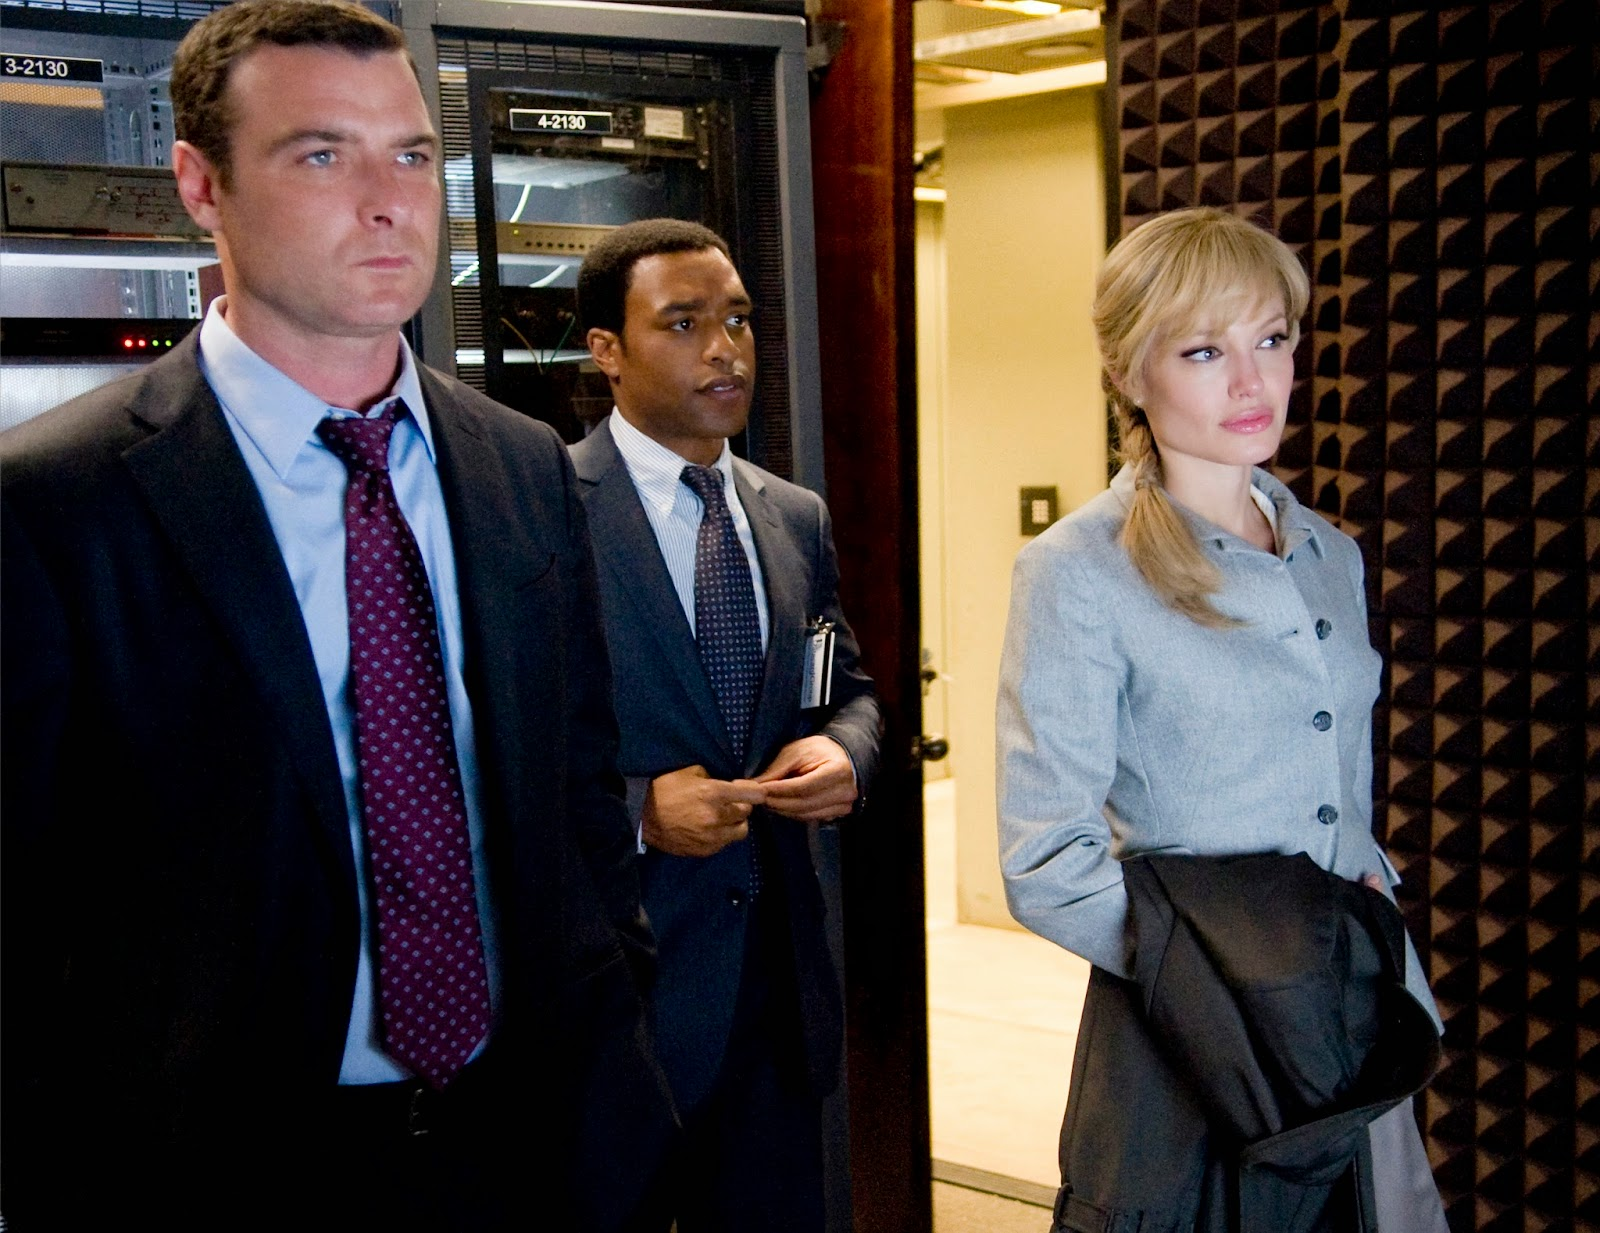 Salt: Liev Schreiber, Chiwetel Ejiofor and Angelina Jolie | A Constantly Racing Mind